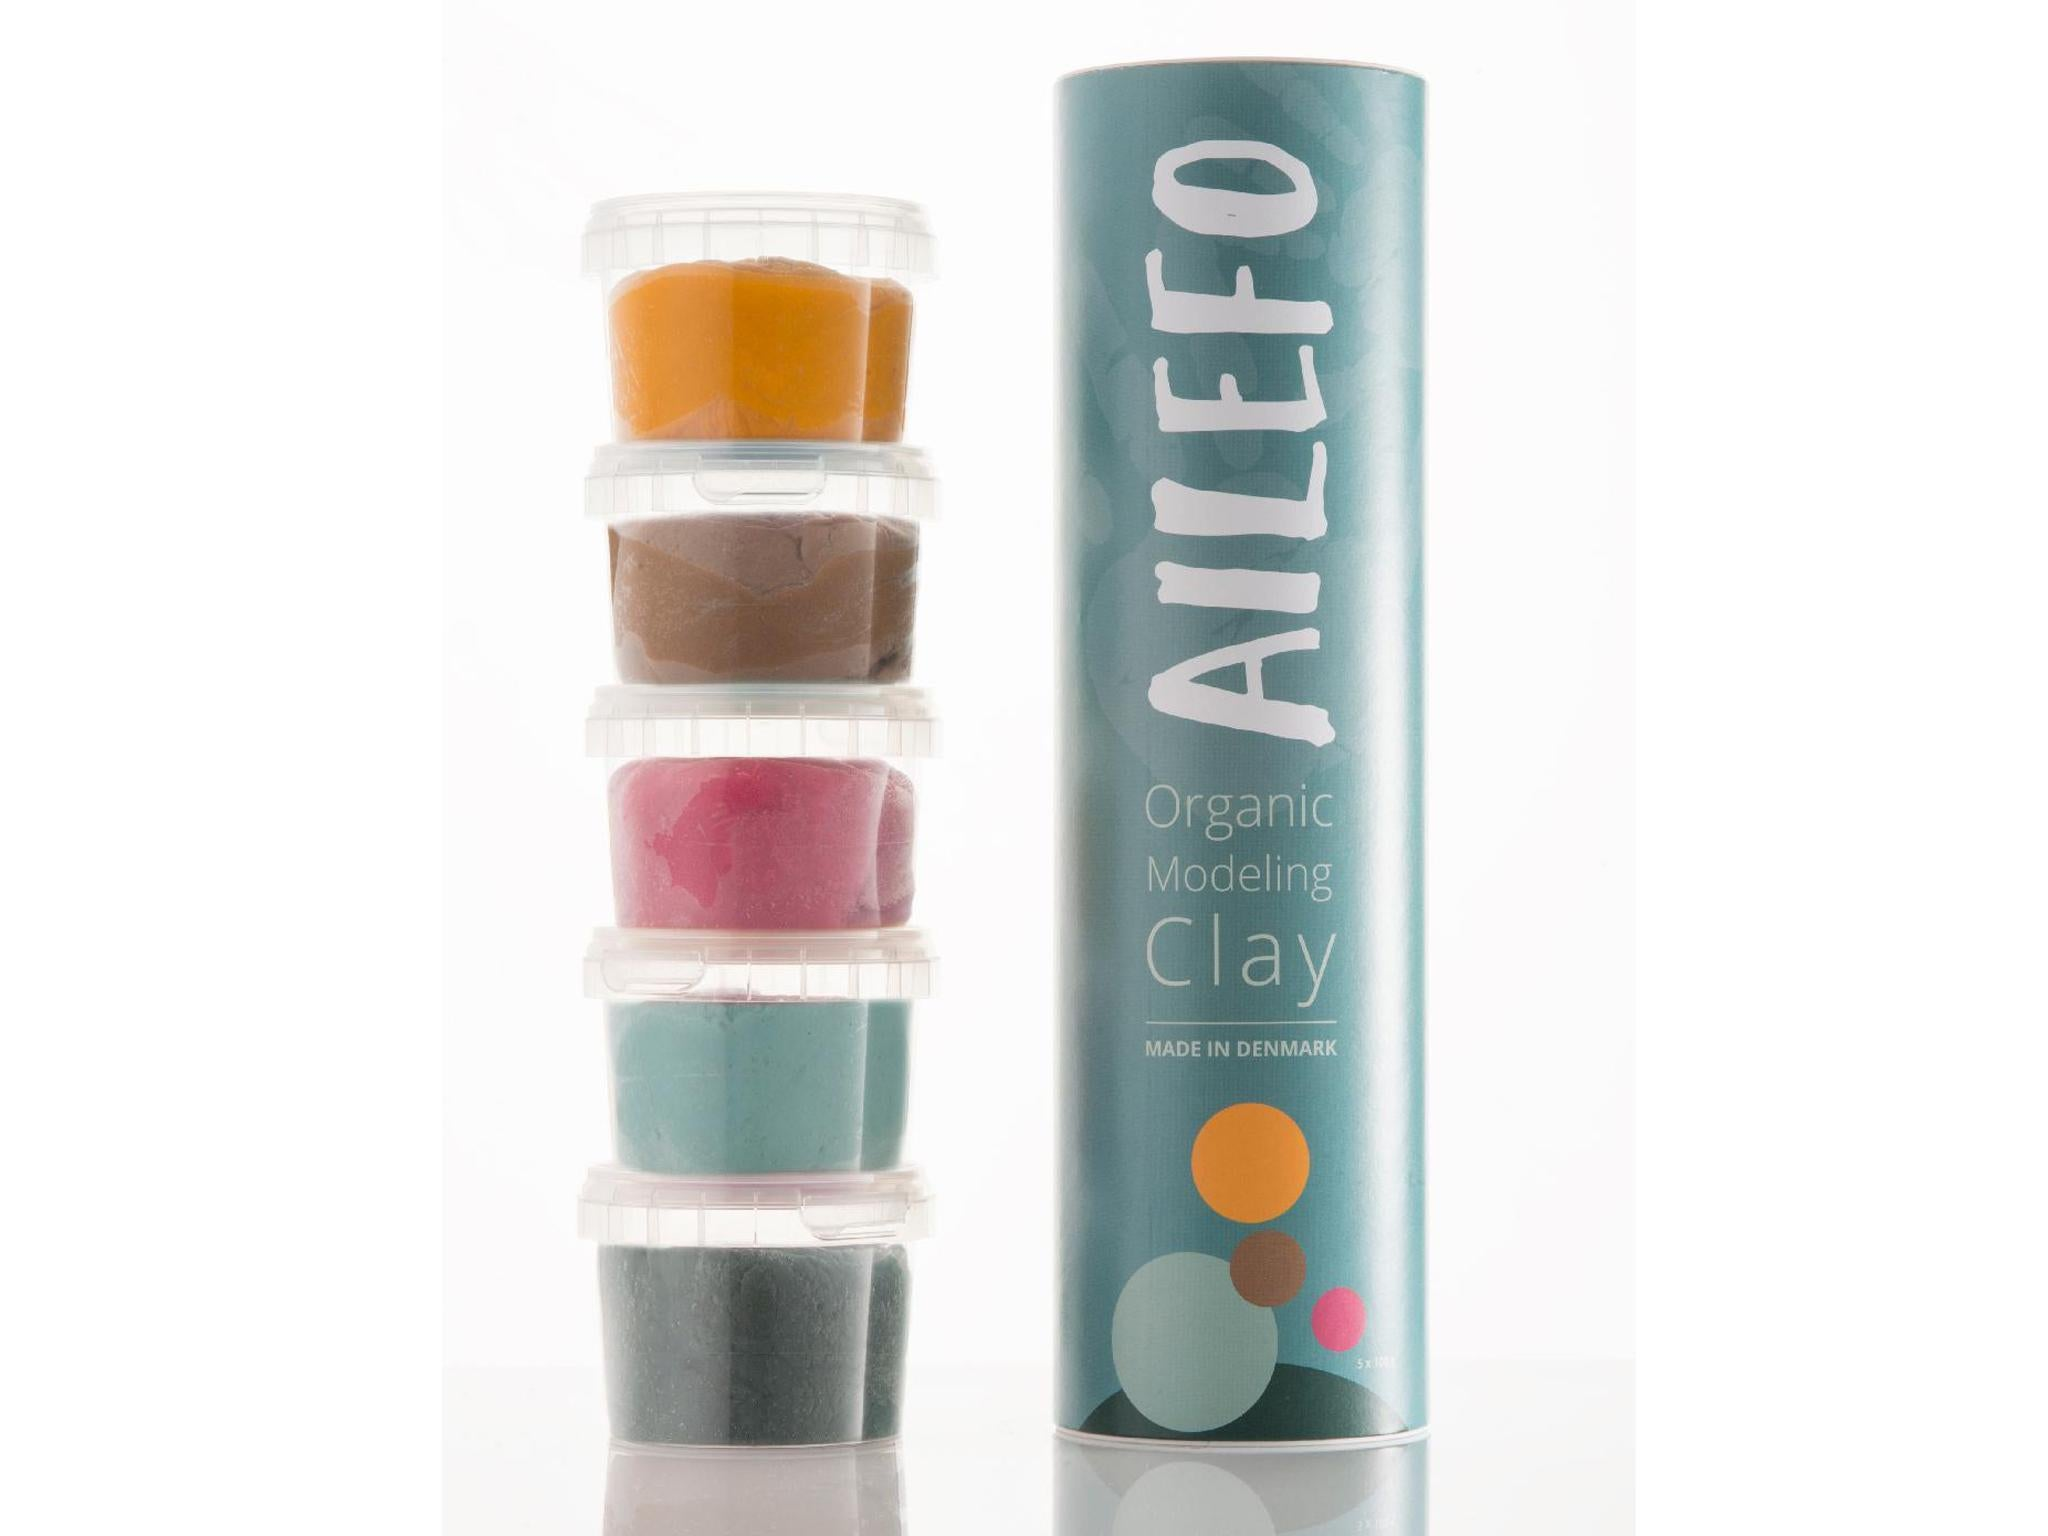 10 Best Eco Friendly Toys The Independent Bouncer Sugar Baby Danish Made Ailefo Is Using Organic Ingredients And Natural Dyes From Fruits Vegetables This Tube Contains Five 100g Tubs But No Perfume Or